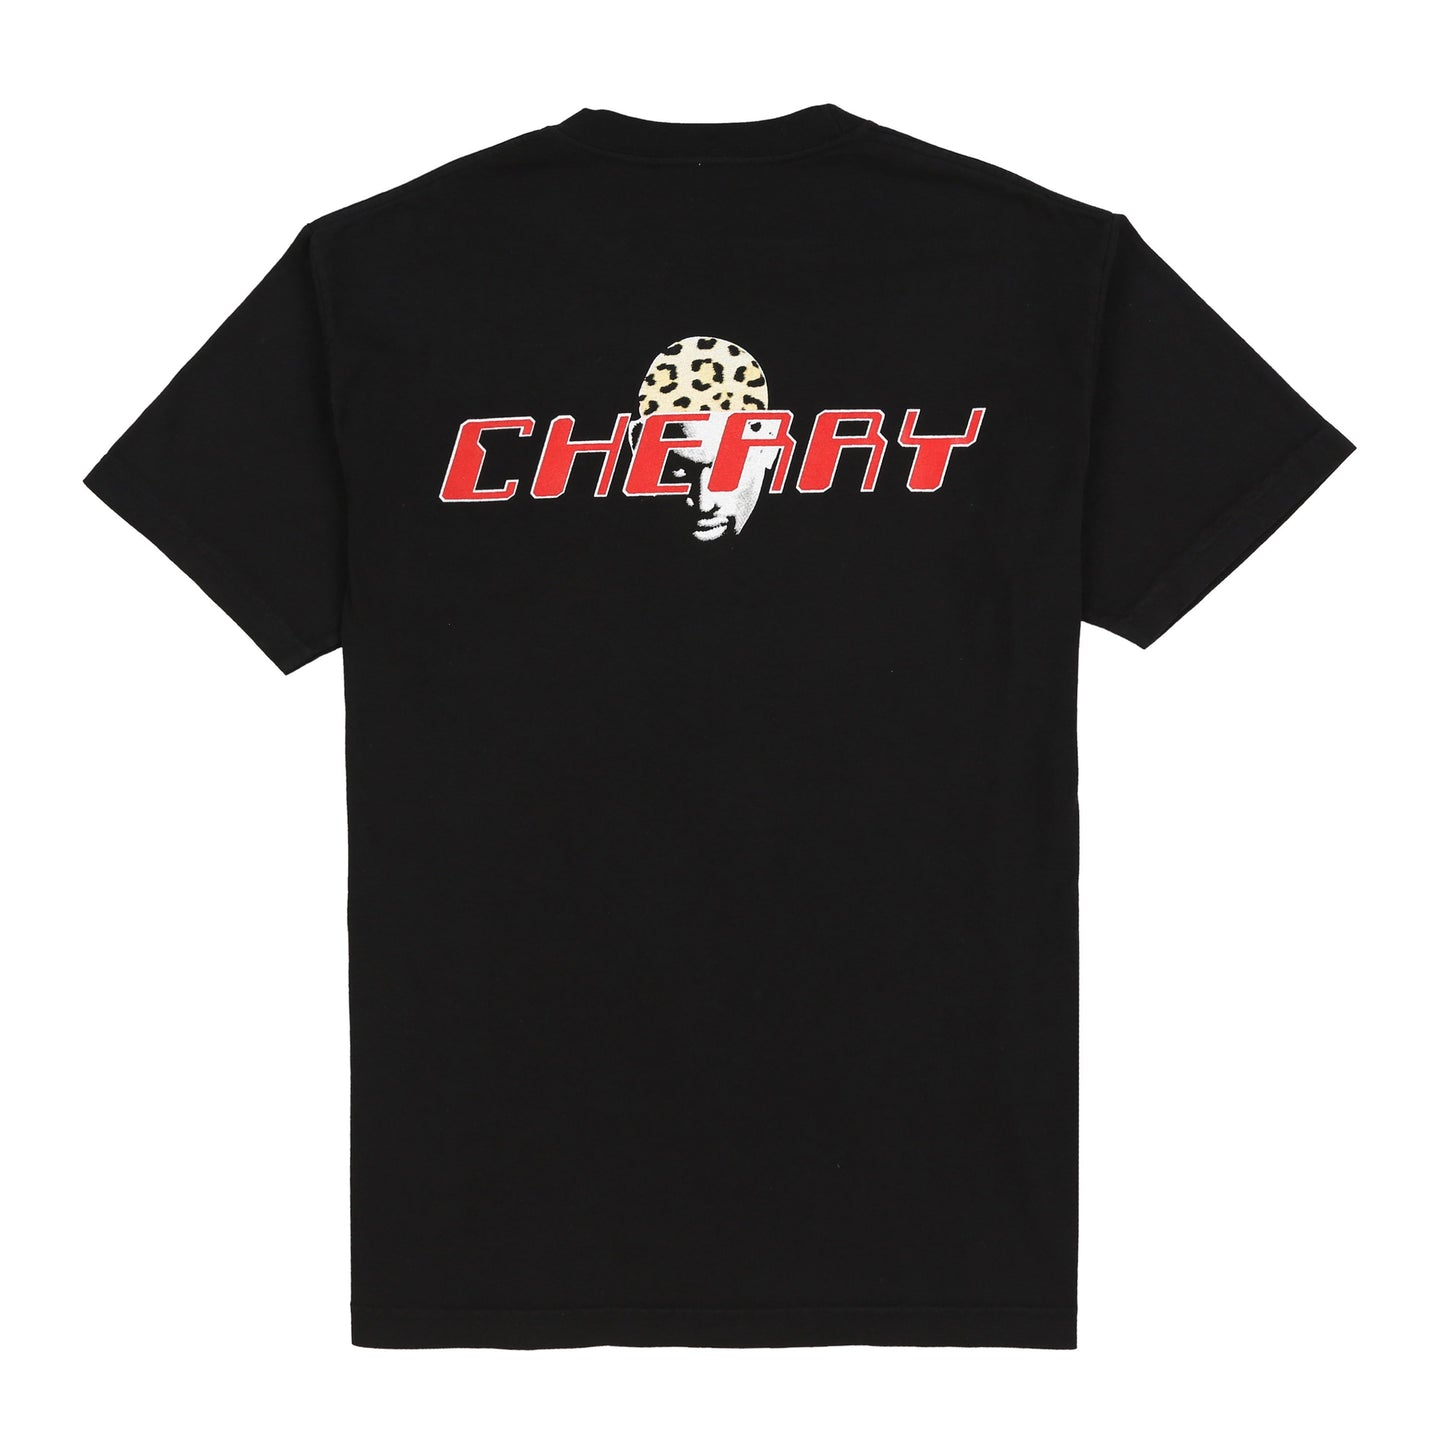 THE MENACE T-SHIRT (AWAY BLACK)